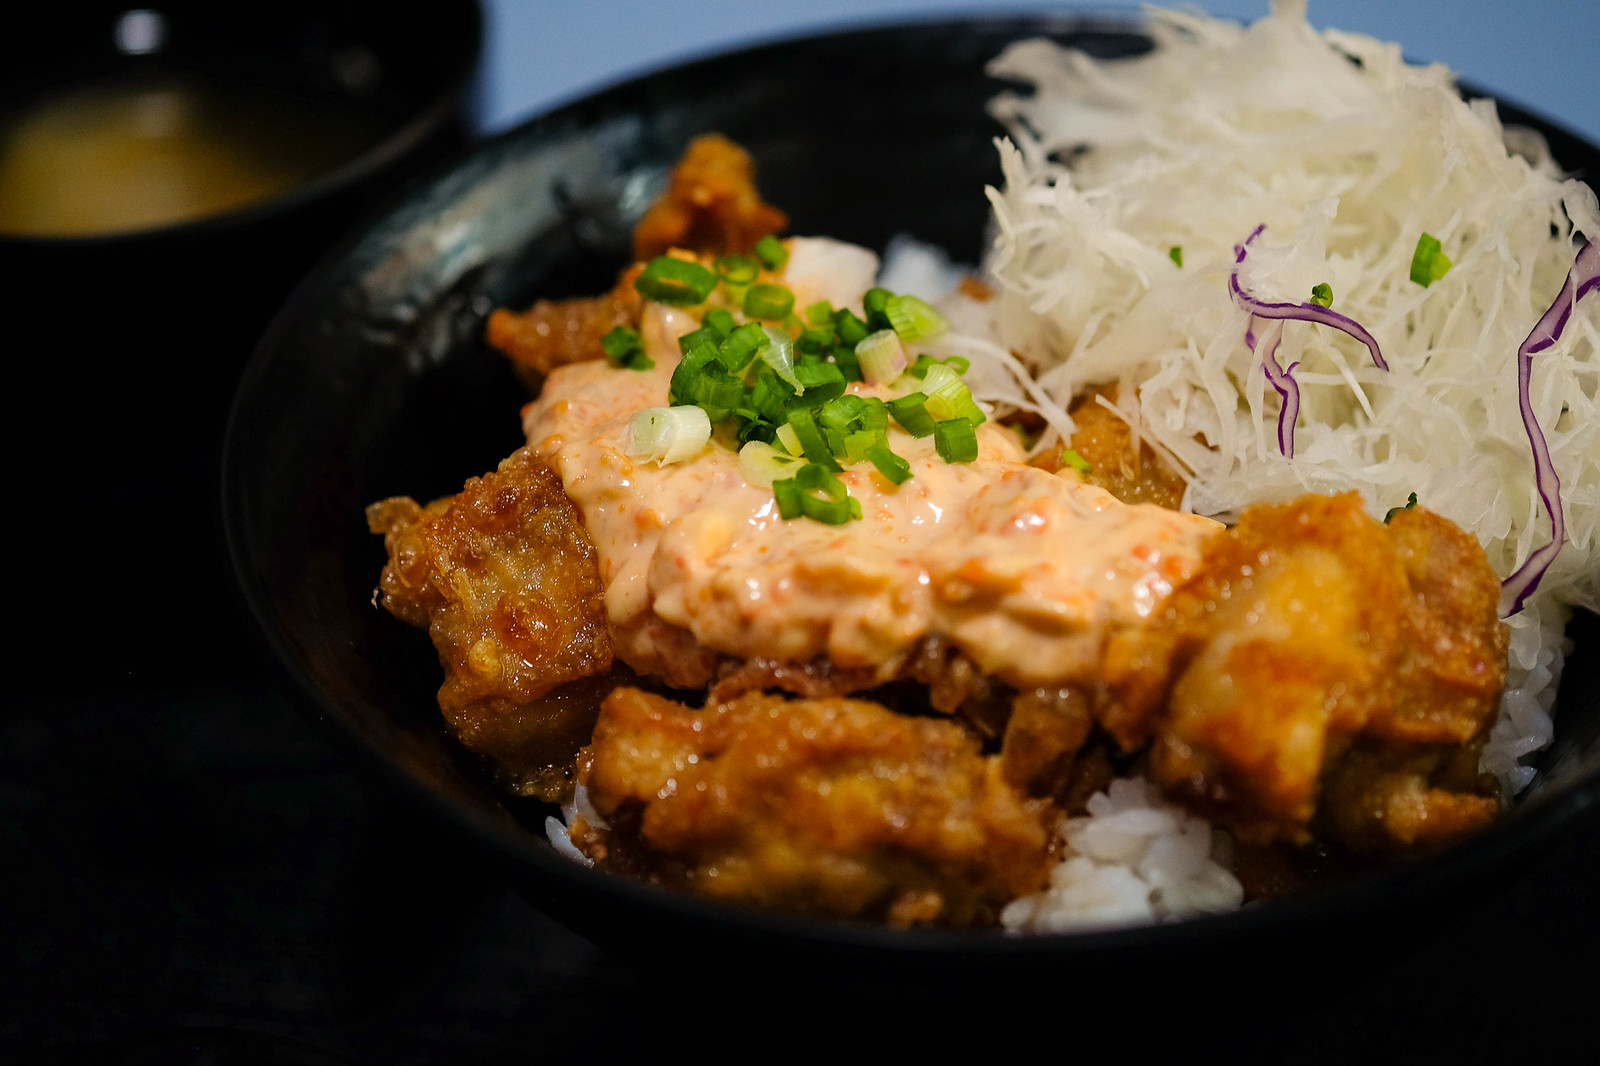 amoy street food centre Don_1